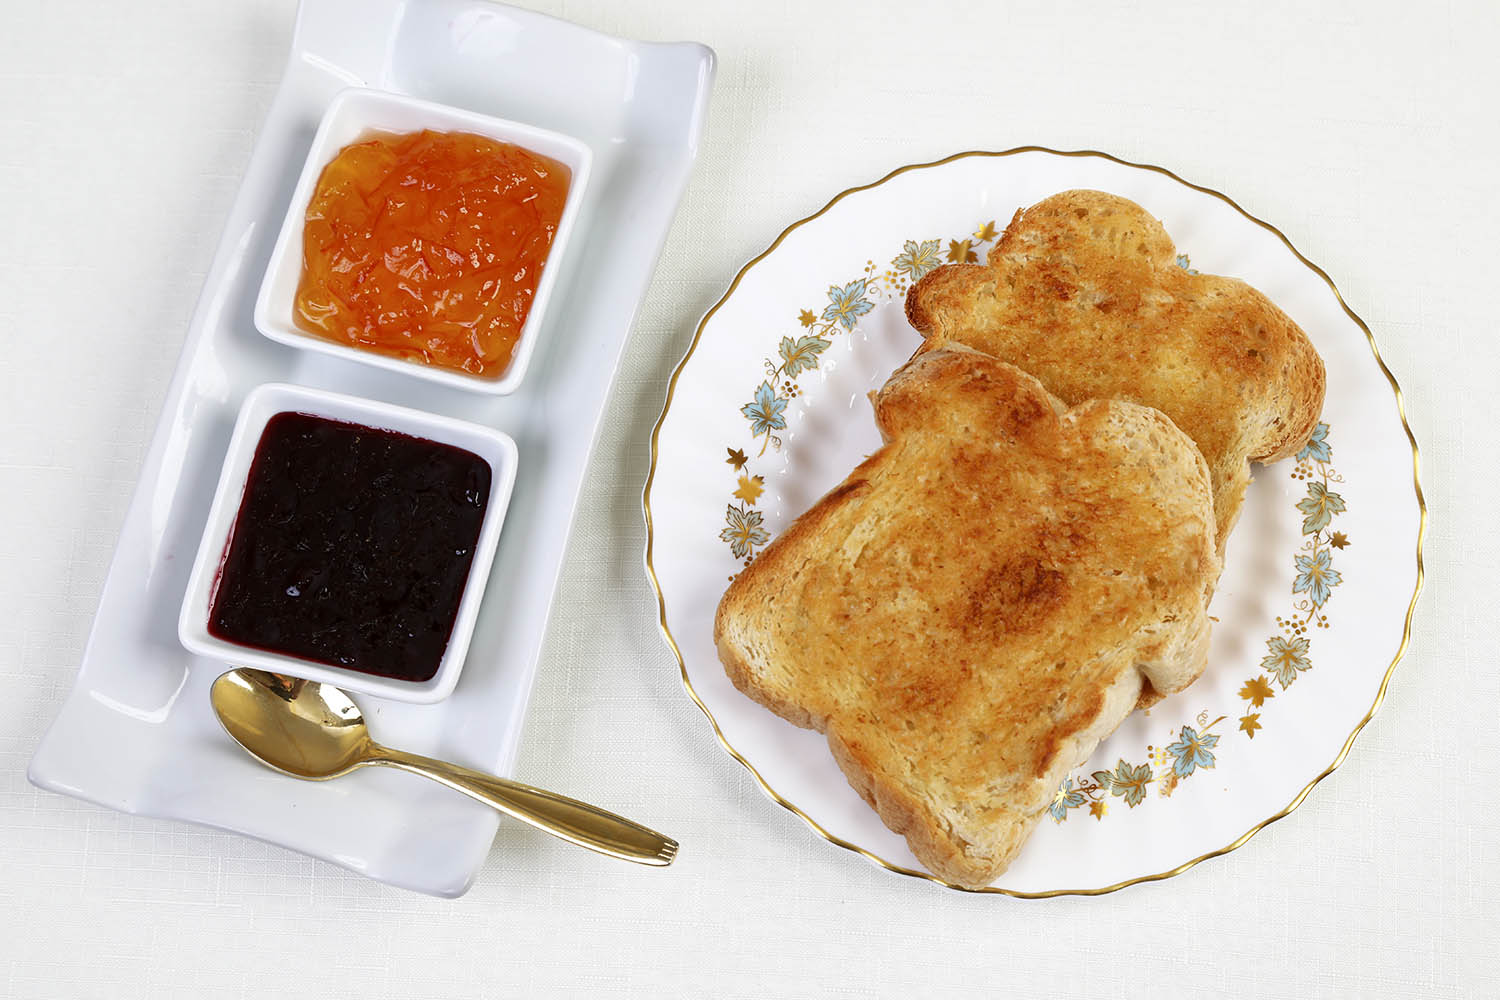 Toast and jams at Summerside Inn Bed and Breakfast